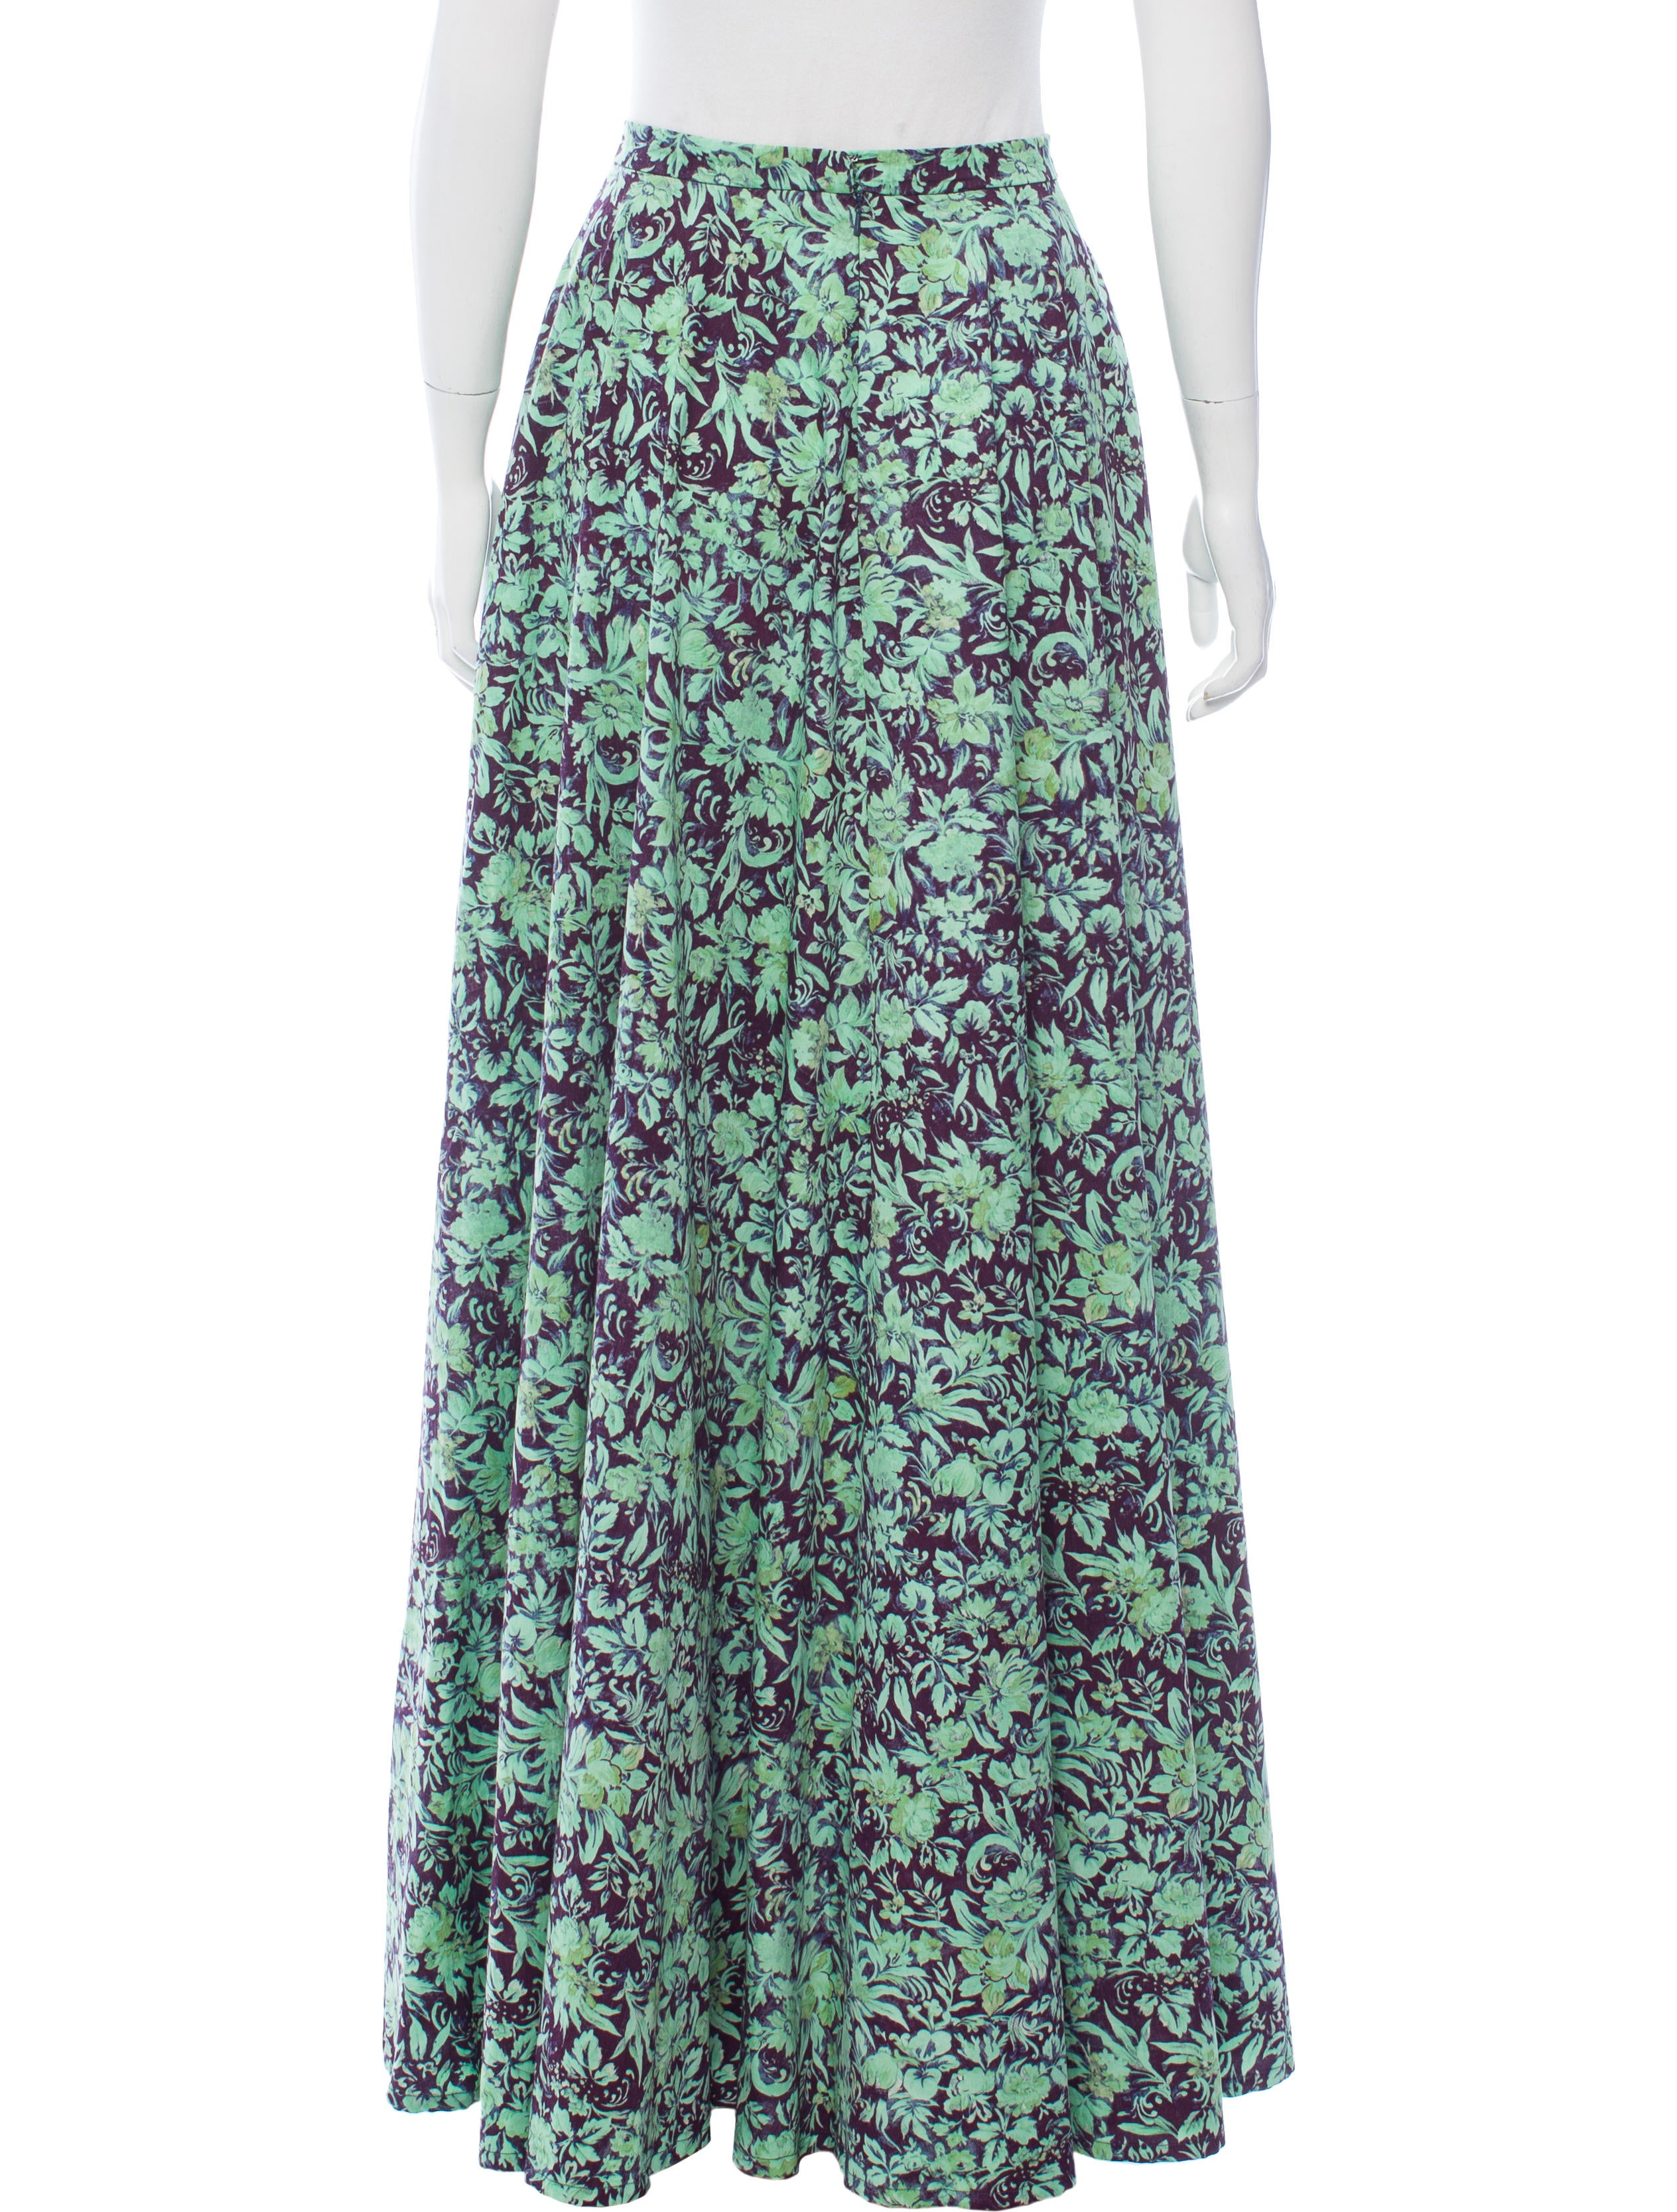 antonoff floral print a line skirt clothing